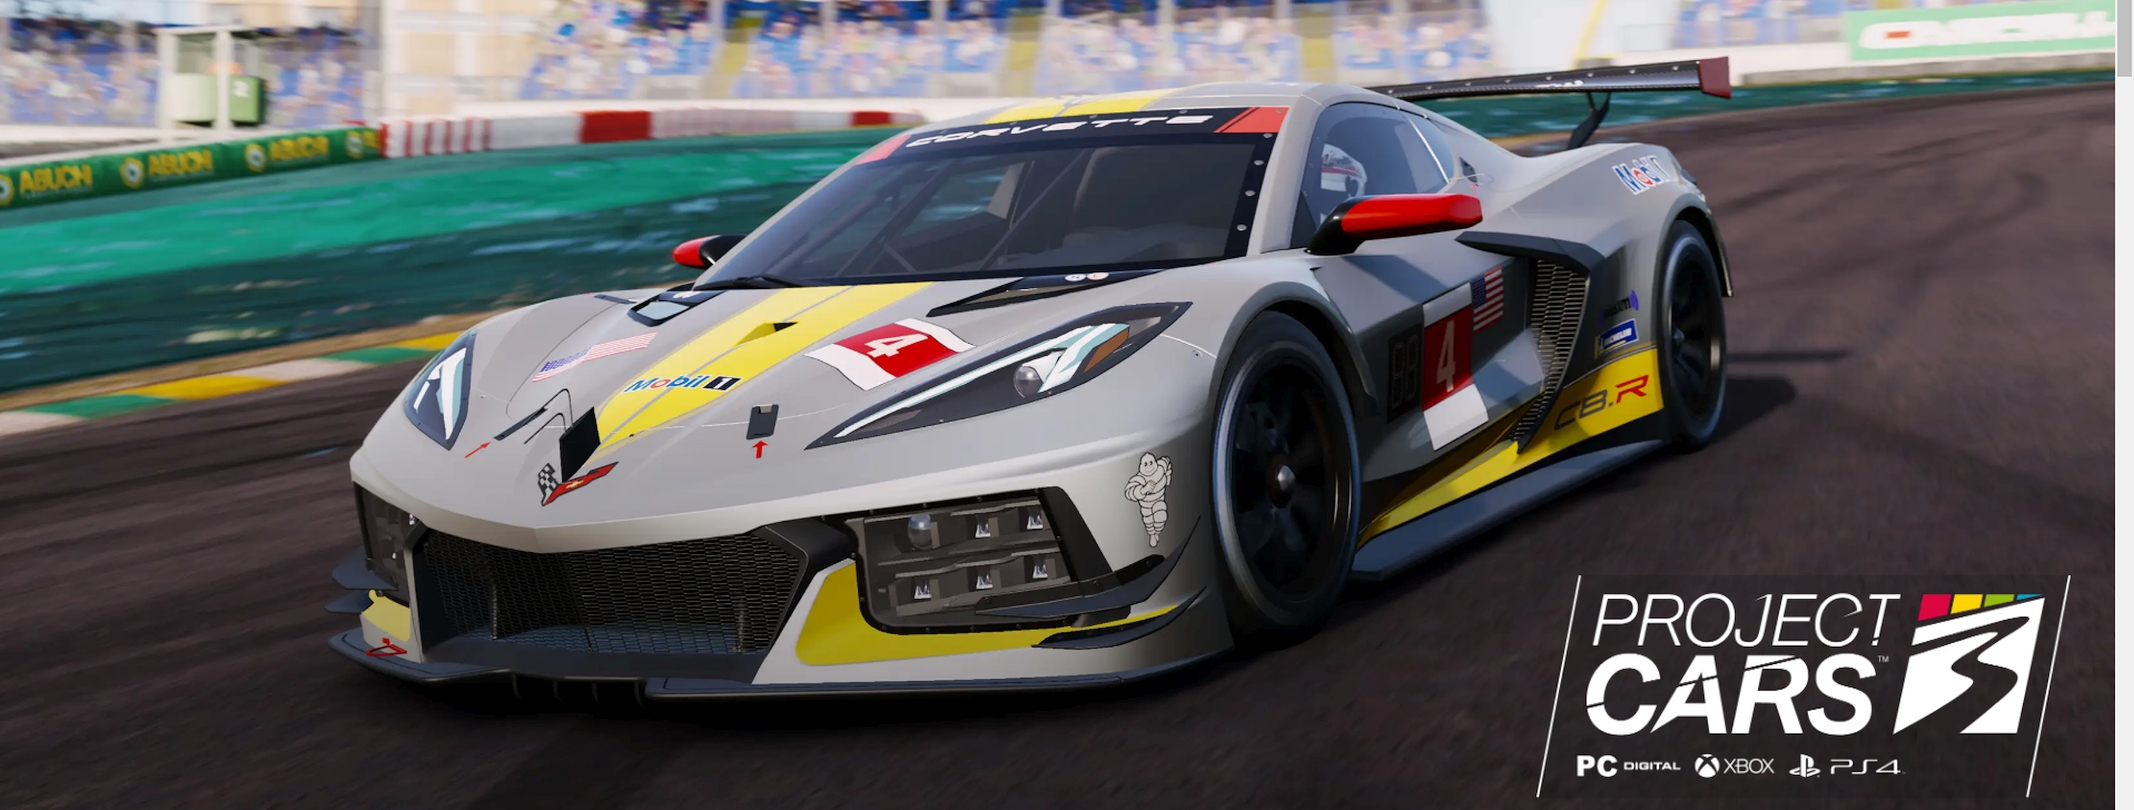 Slightly Mad Studios' Project Cars 3 Rides Onto PC And Consoles On August 28